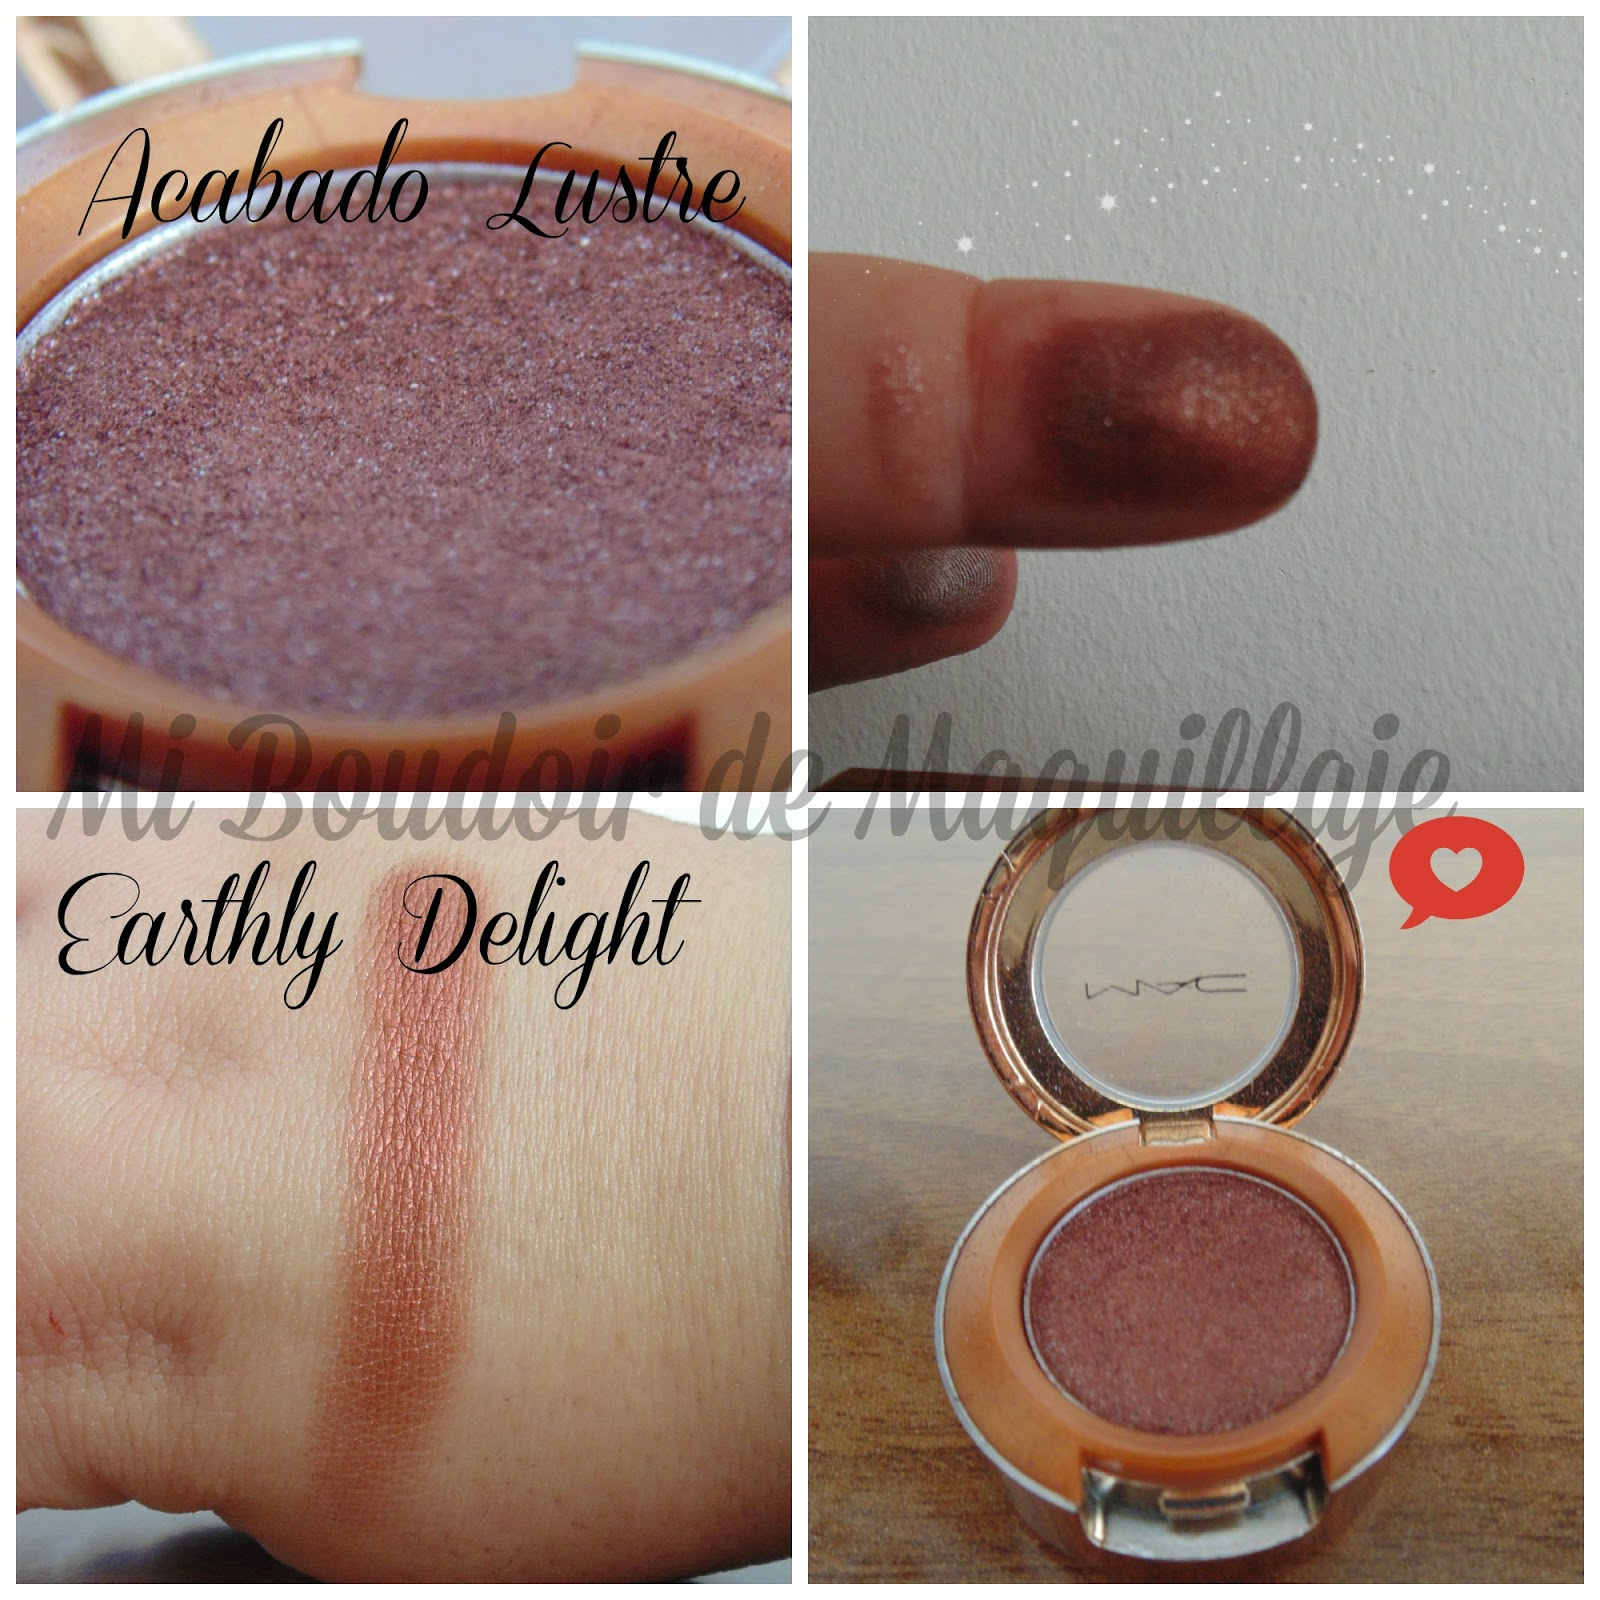 Earthly Delight Acabado Lustre Mac Eyeshadow